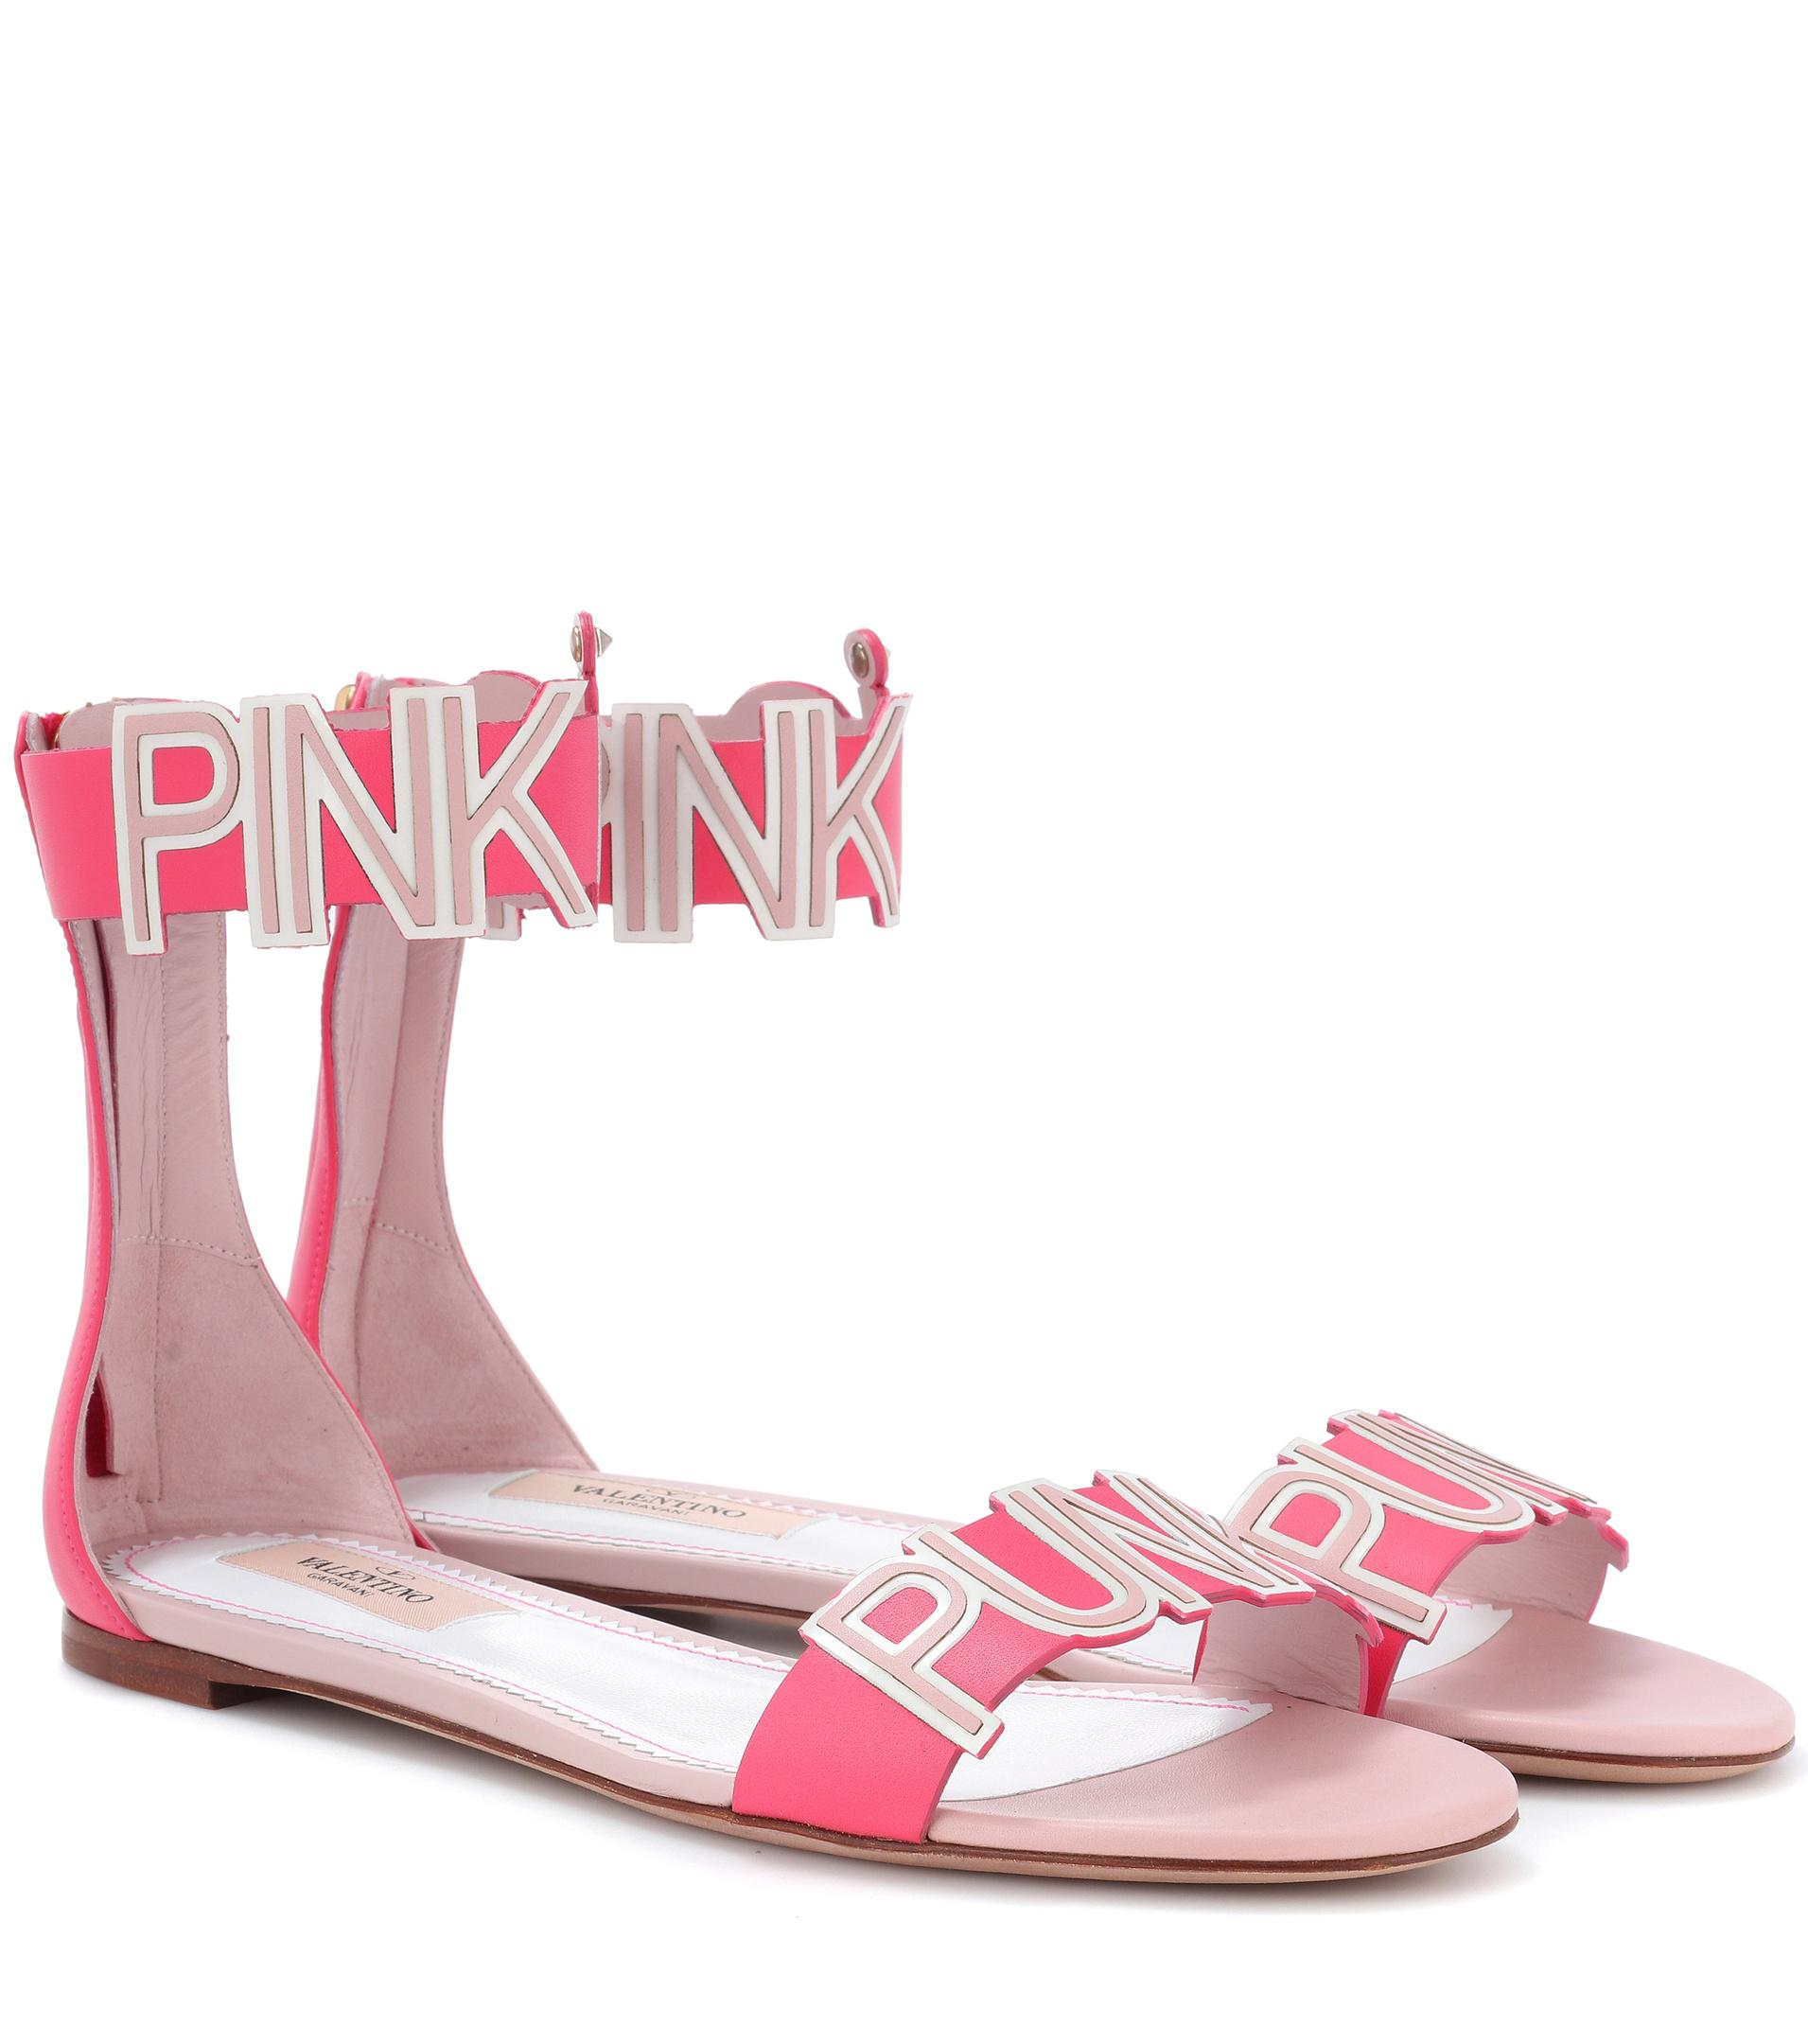 f8aeead70 Valentino Pink Is Punk Sandals in Pink - Lyst